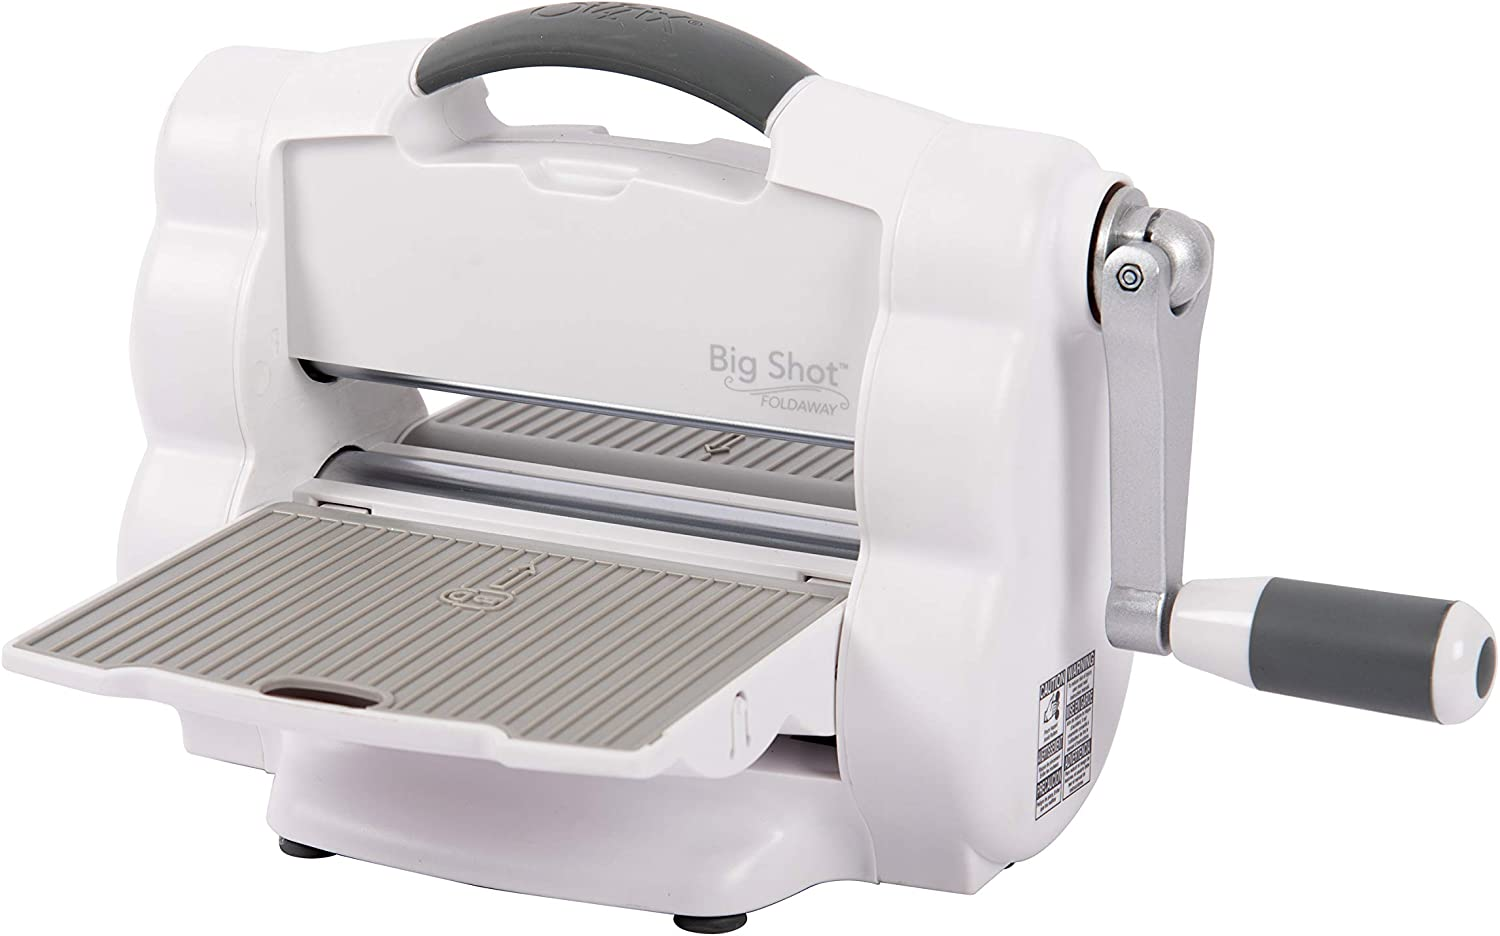 Sizzix Big Shot Foldaway A5 Machine - A manual model that can fit an A5 piece of paper